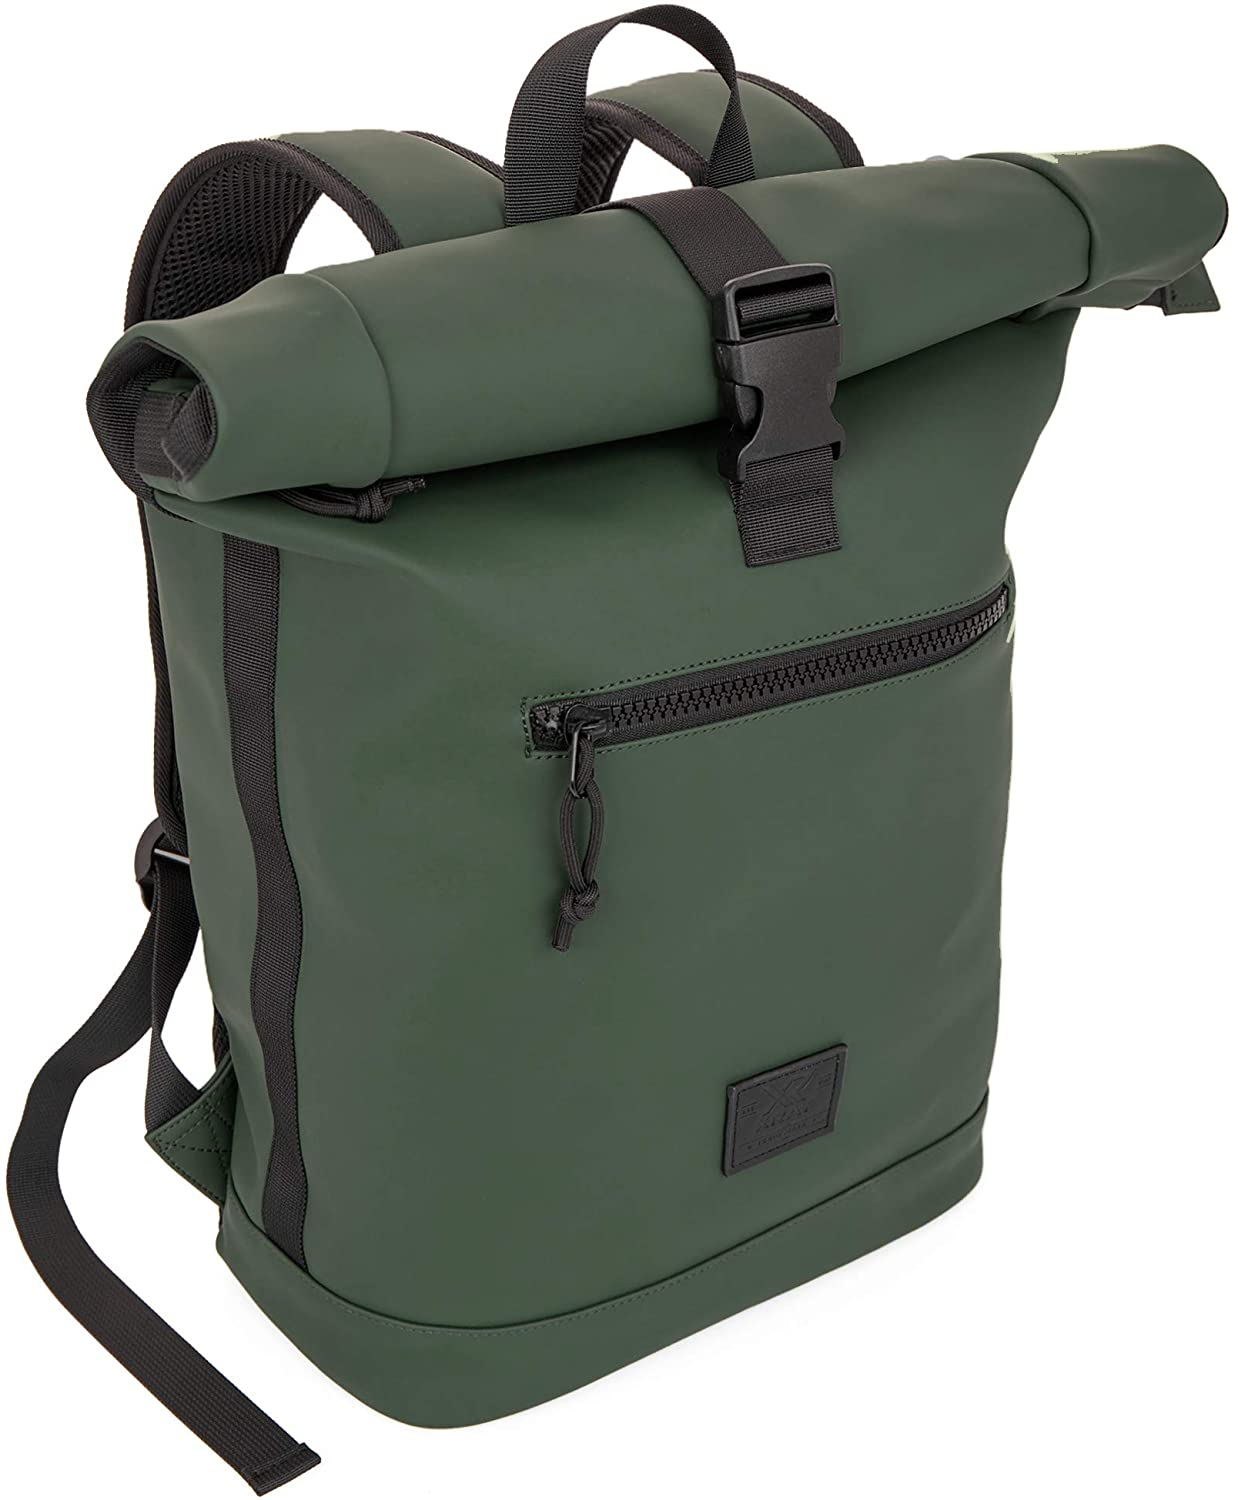 XRAY Expandable Roll Top Backpack